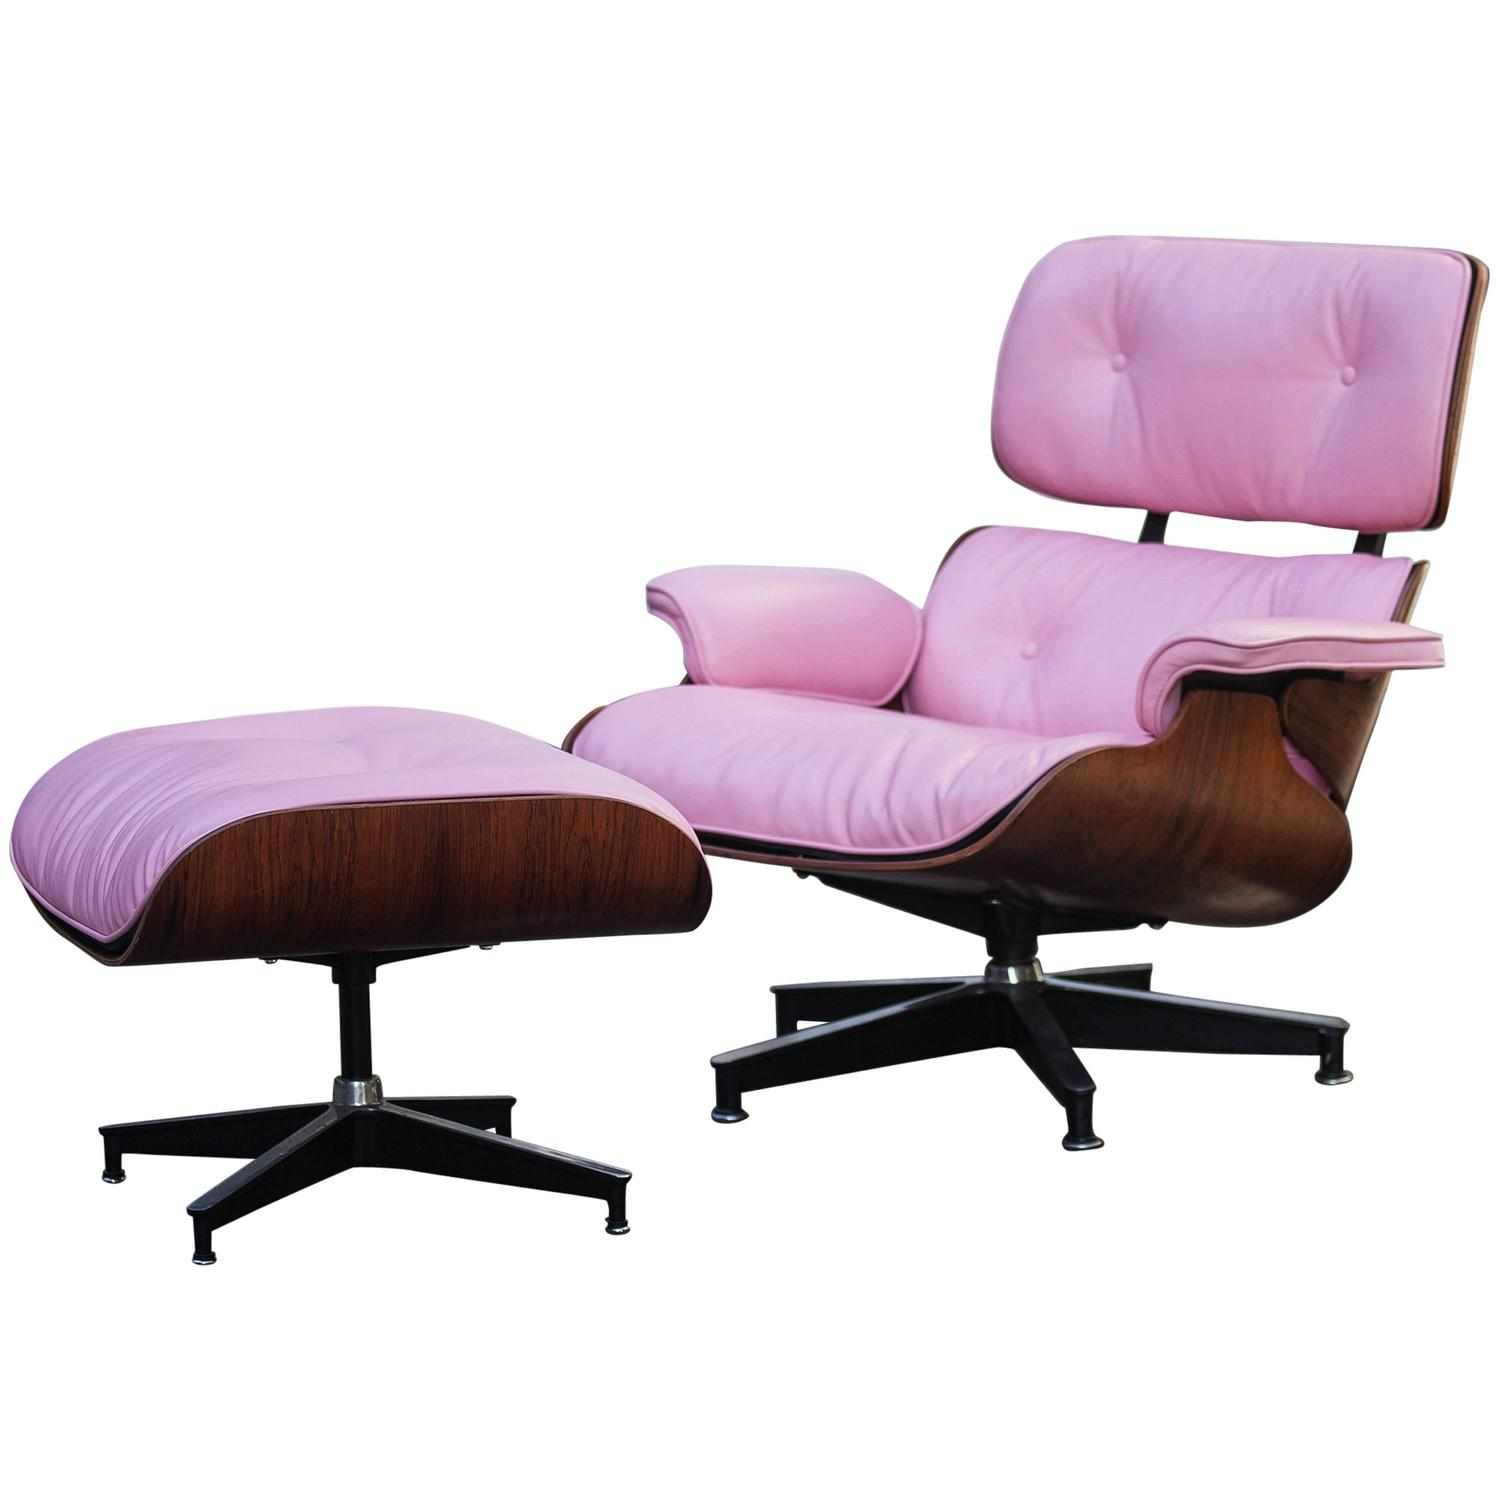 pink club chair swivel hunting with gun rest beautiful charles eames lounge for herman